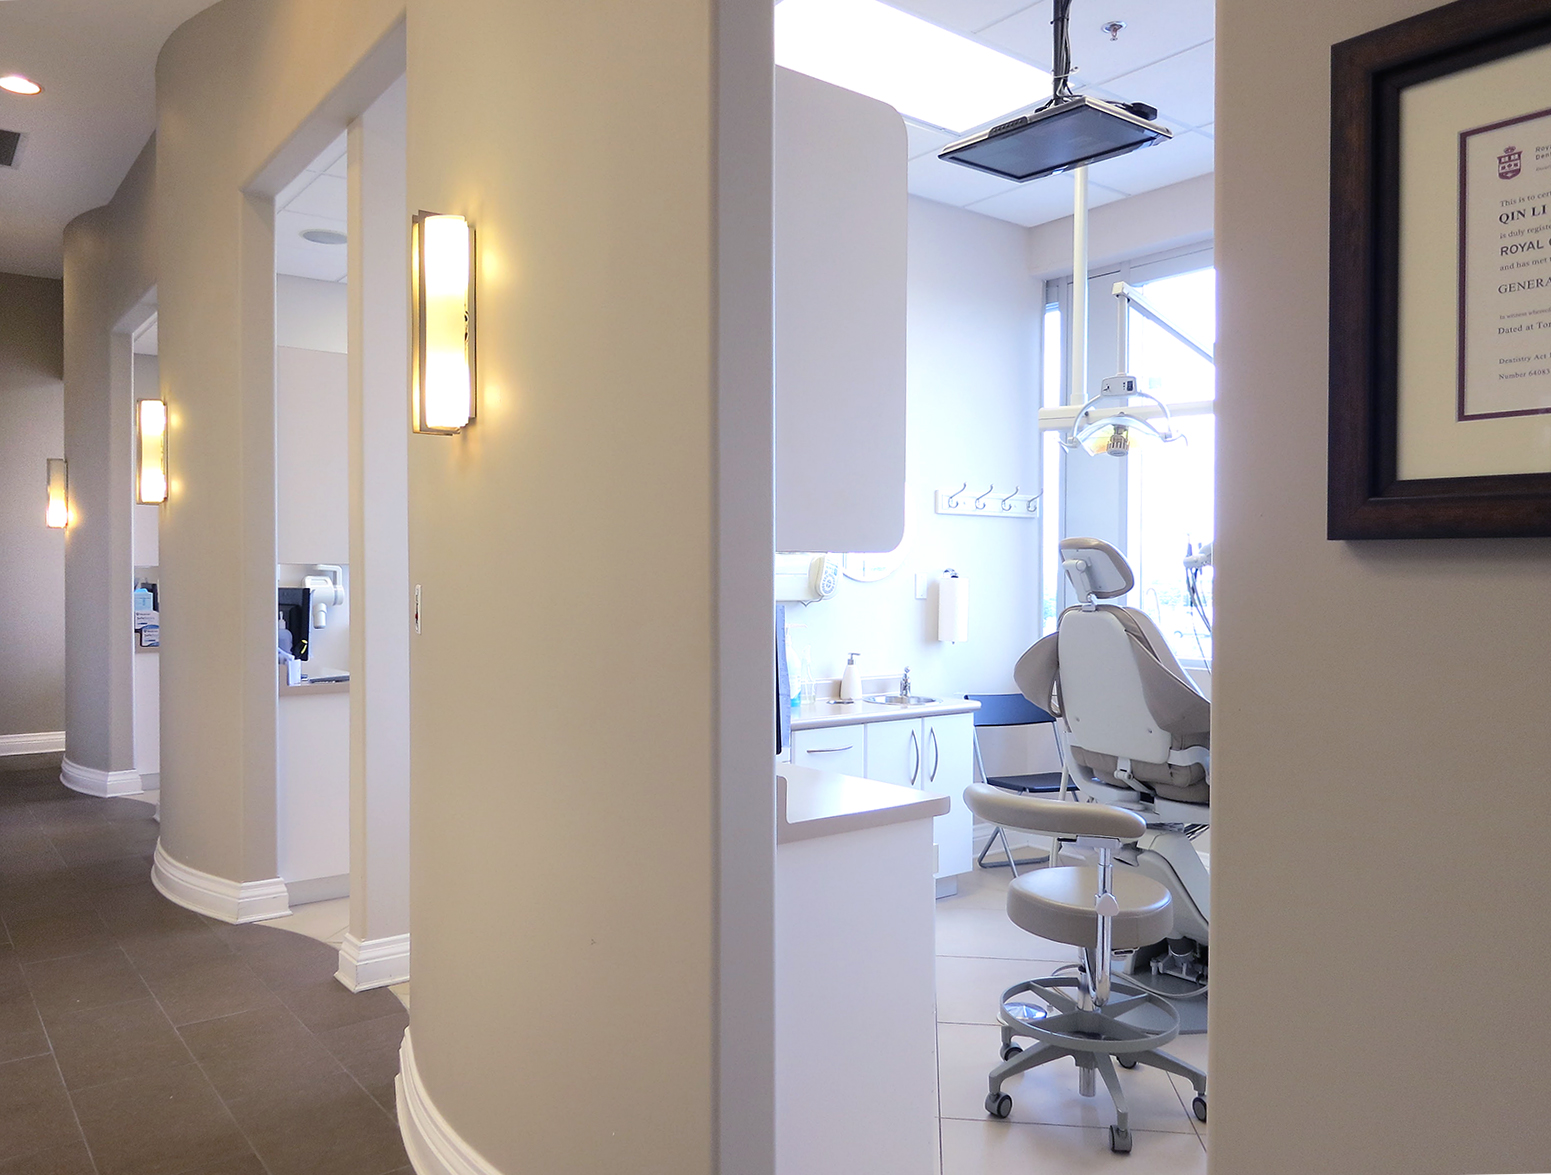 Dental clinic with high ceilings